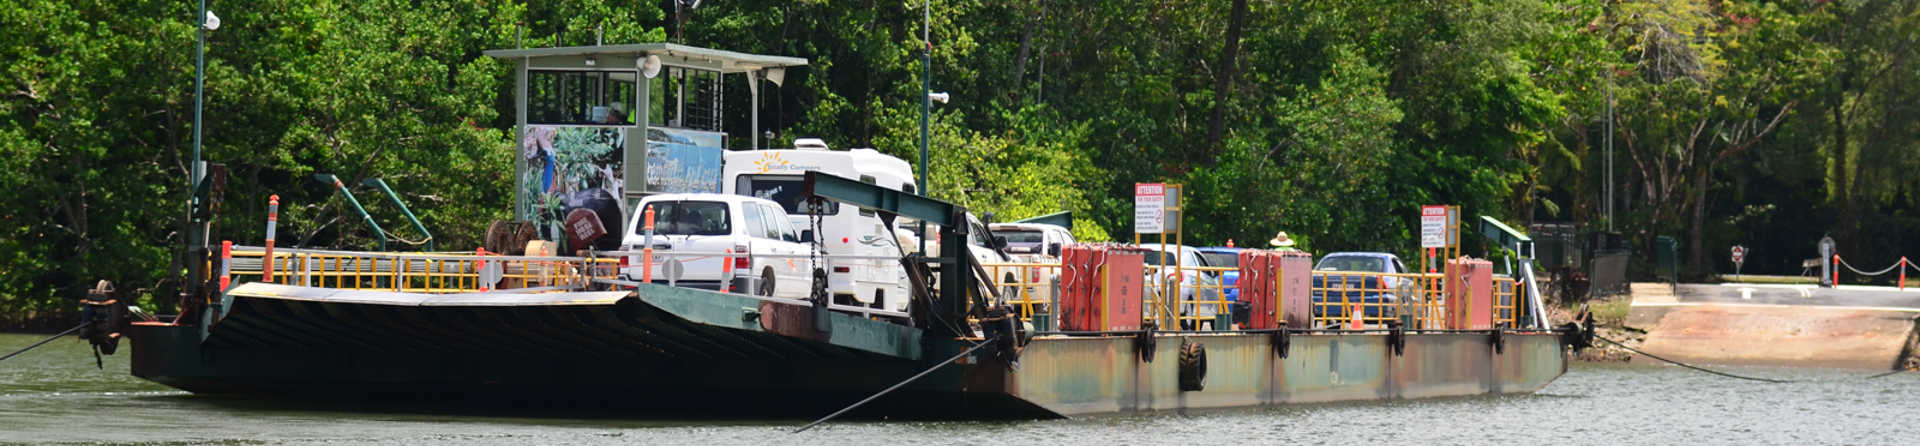 How Much Does the Daintree Ferry Cost?